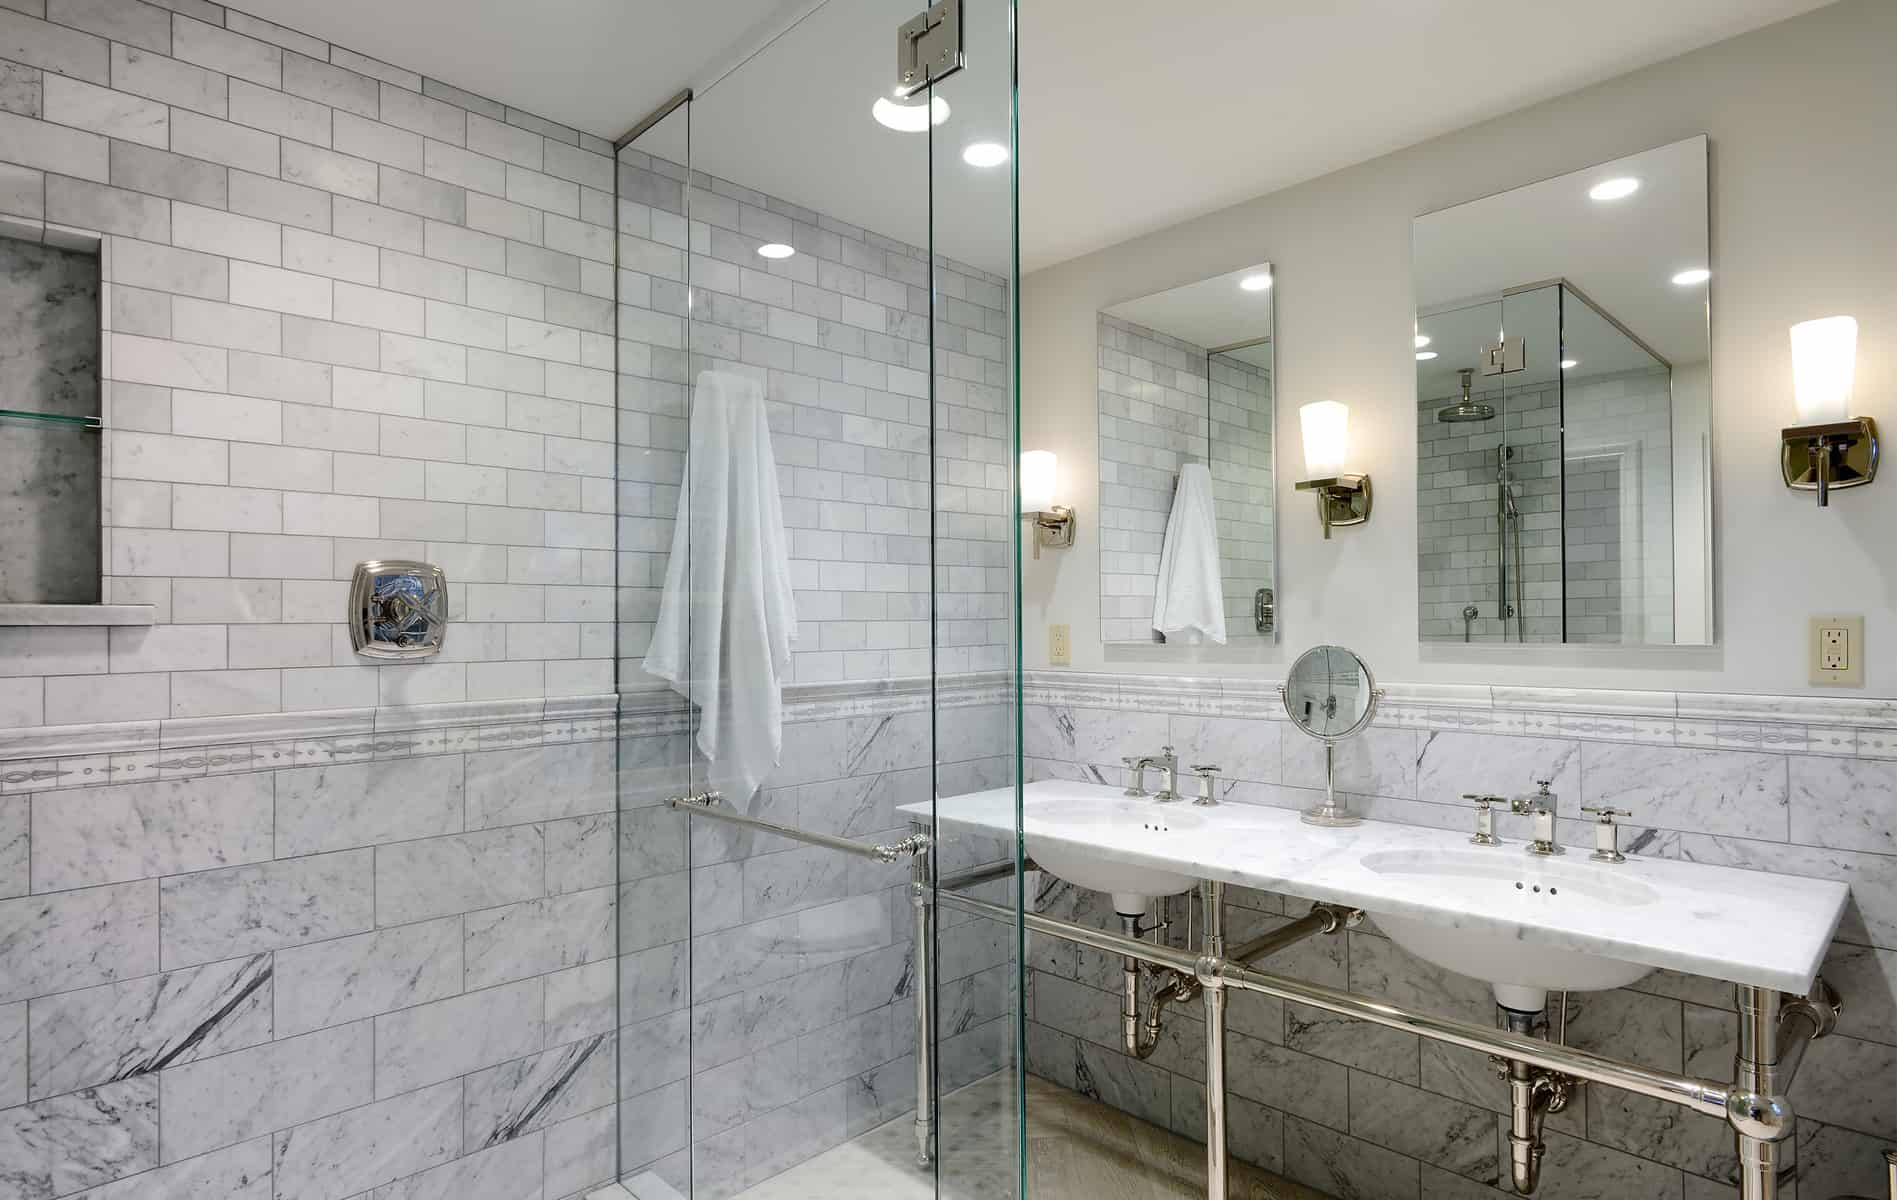 Bathroom Redo. 7 Smart Strategies For Bathroom Remodeling Redo I